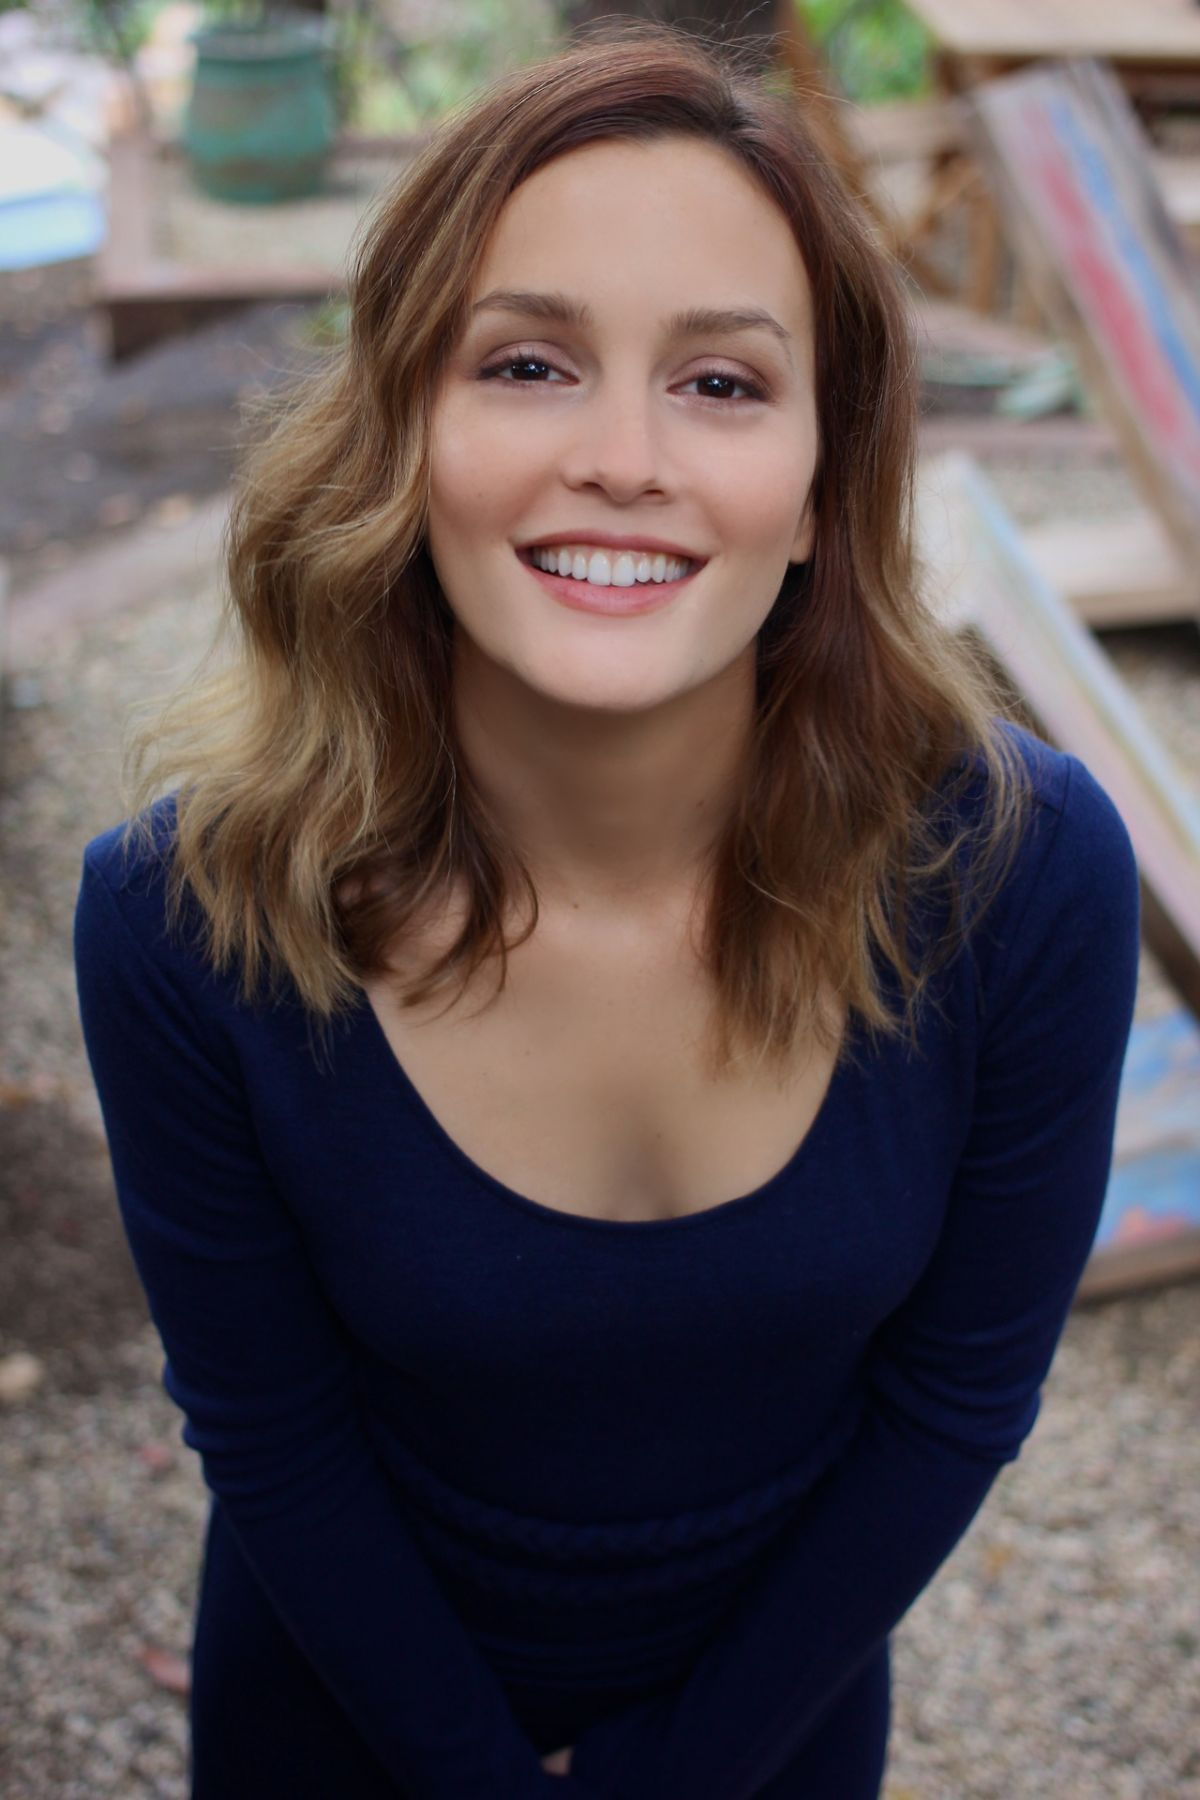 Leighton Meester Wallpapers Celebrity Hq Leighton Meester Pictures 4k Wallpapers 2019